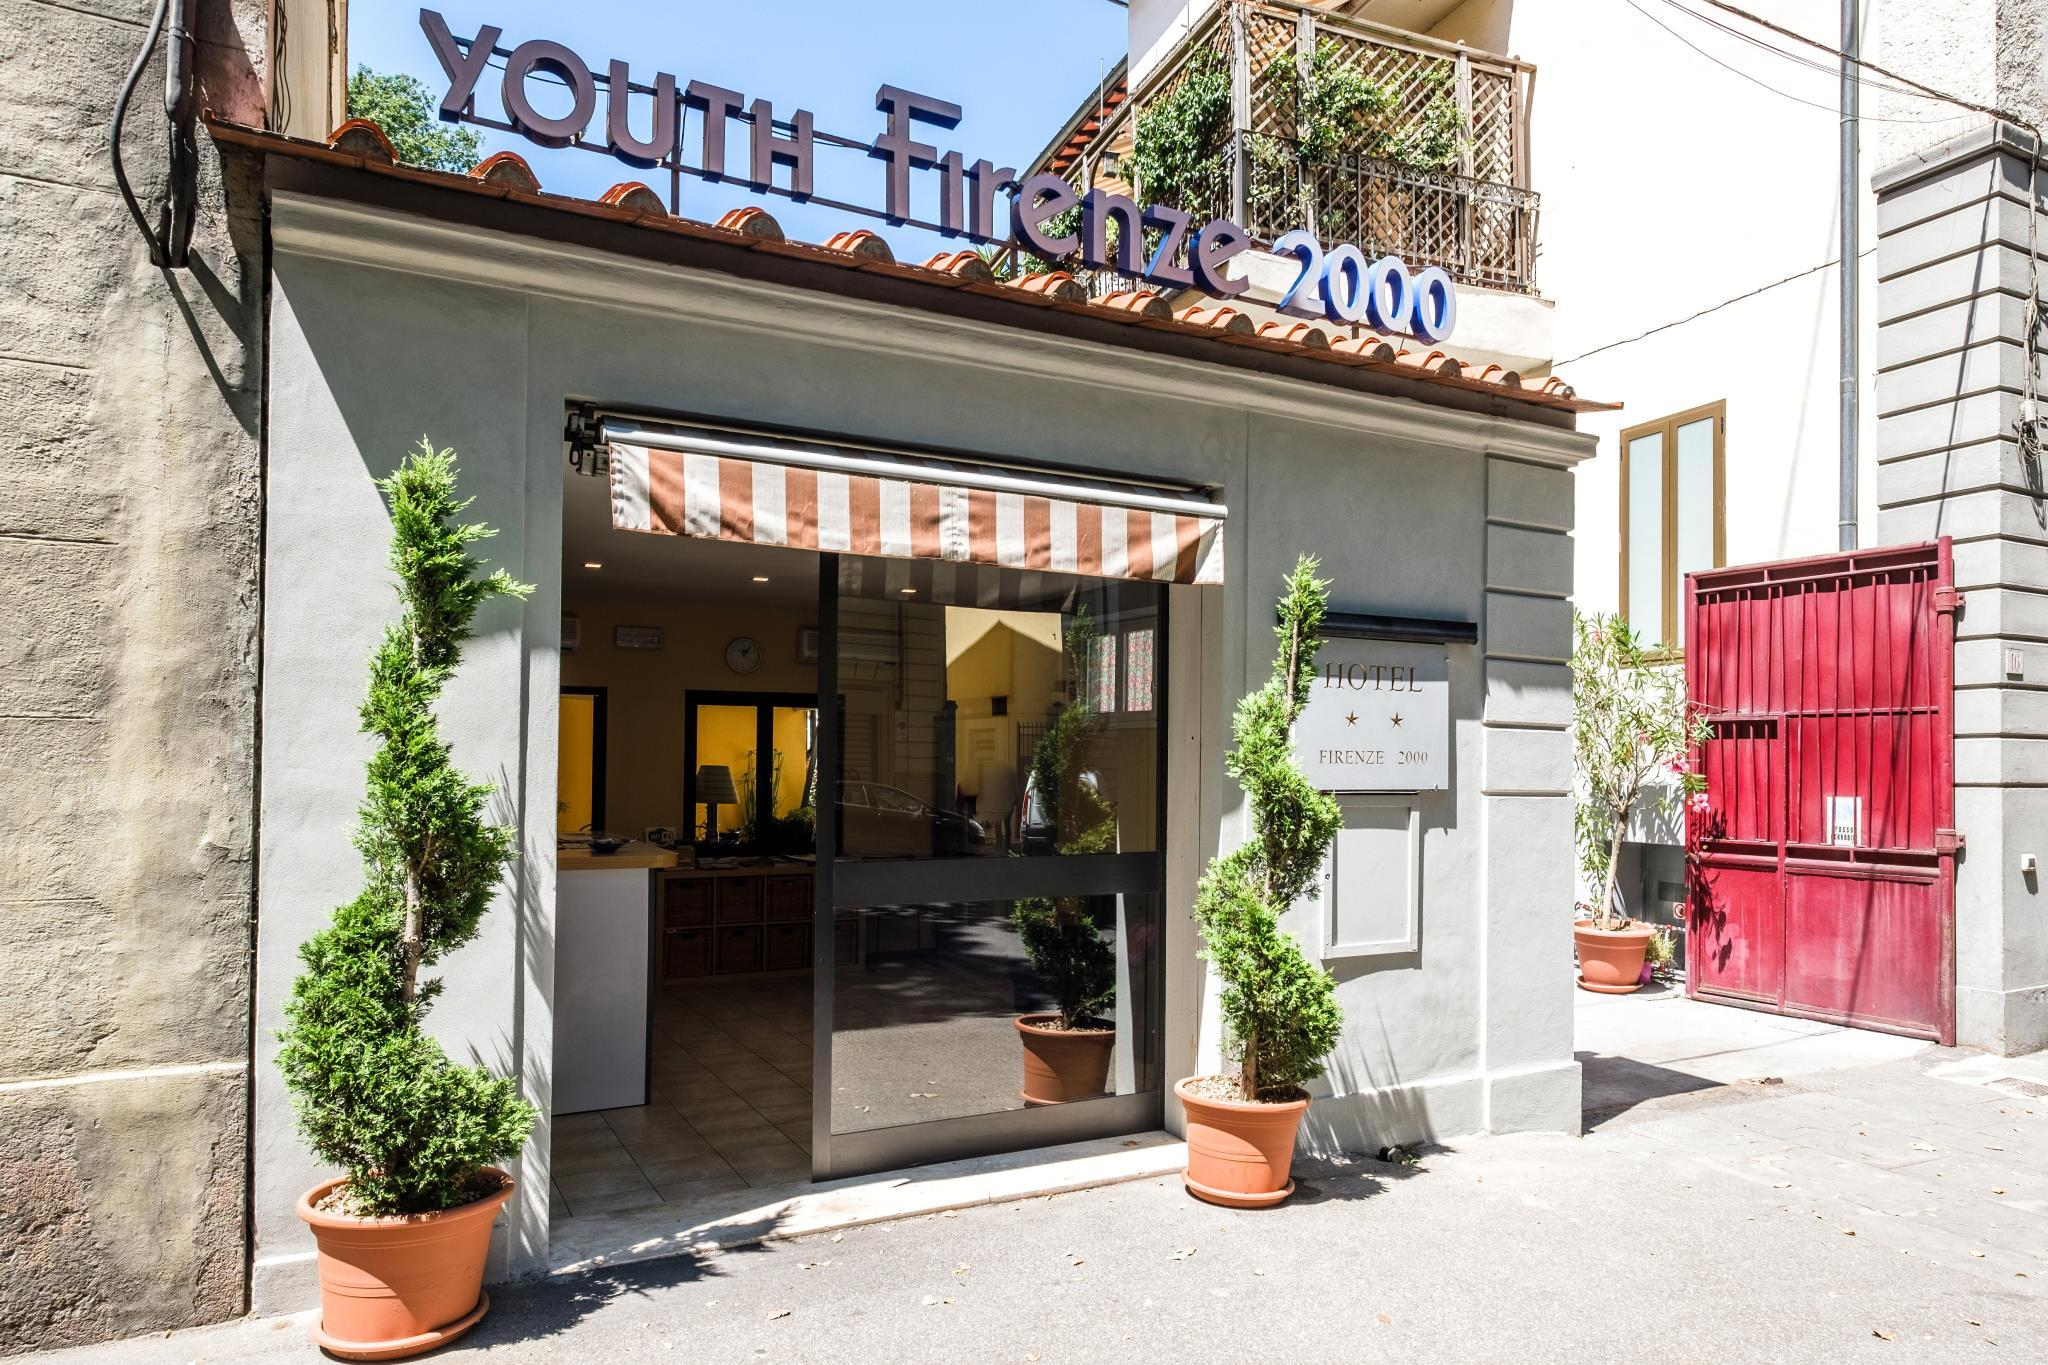 Guest House Soggiorno Monaco Firenze Youth Firenze 2000 In Florence Room Deals Photos Reviews